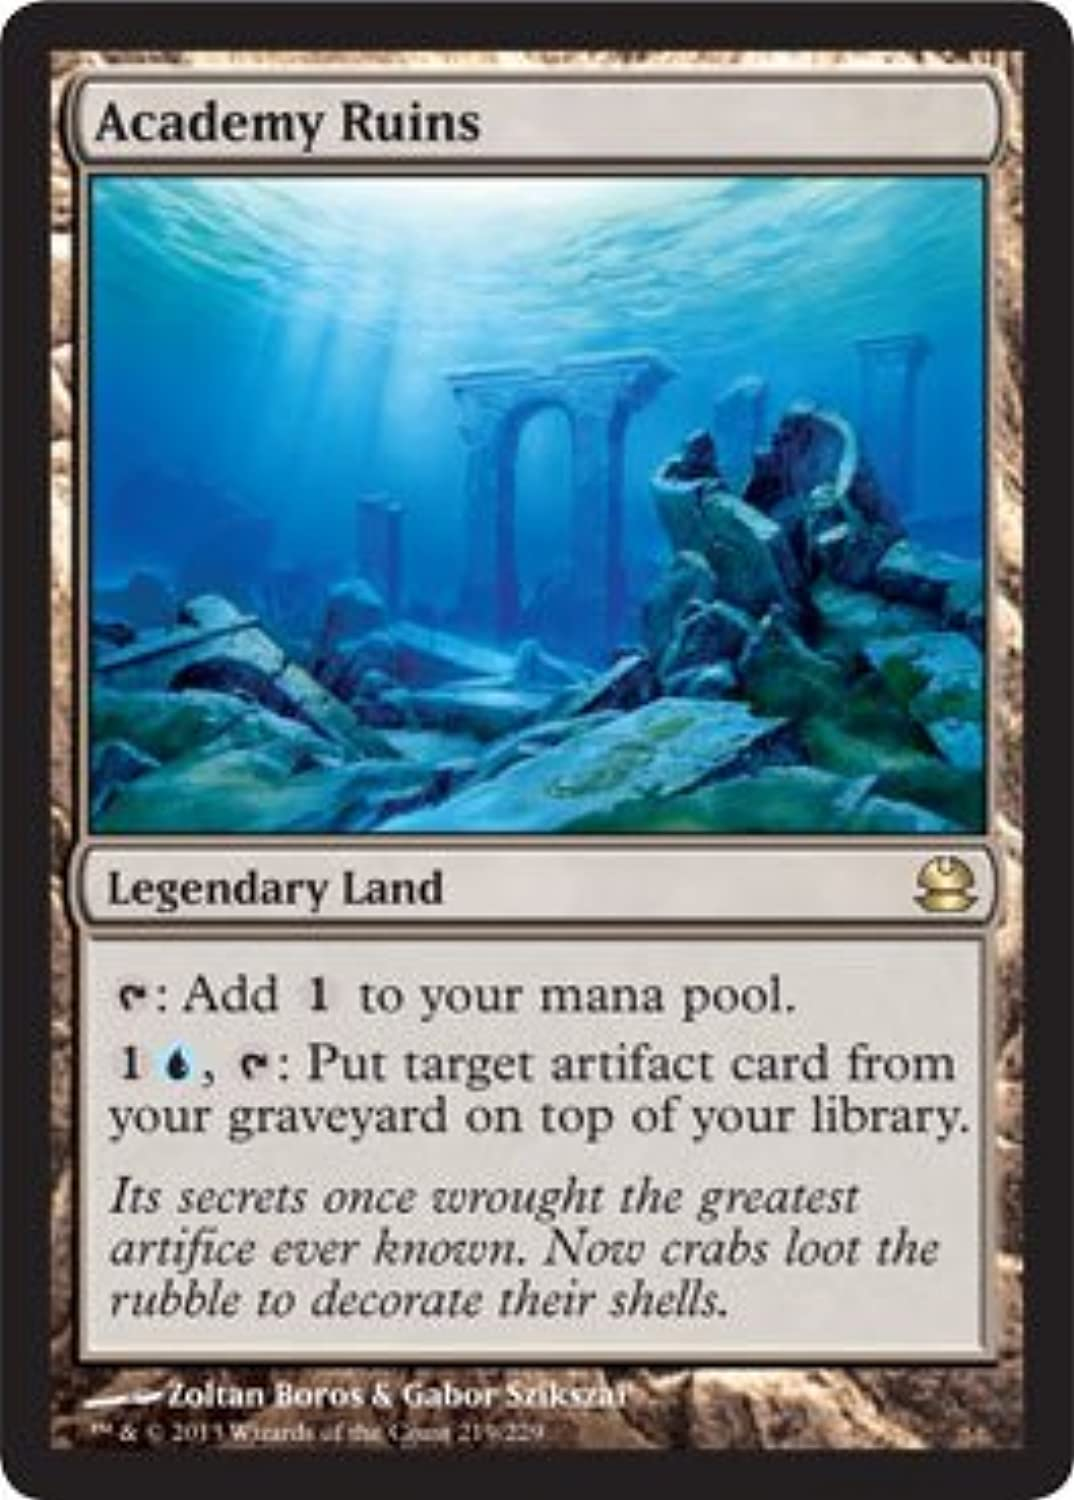 Sin impuestos Magic  the Gathering - - - Academy Ruins - Modern Masters by Magic  the Gathering  ahorre 60% de descuento